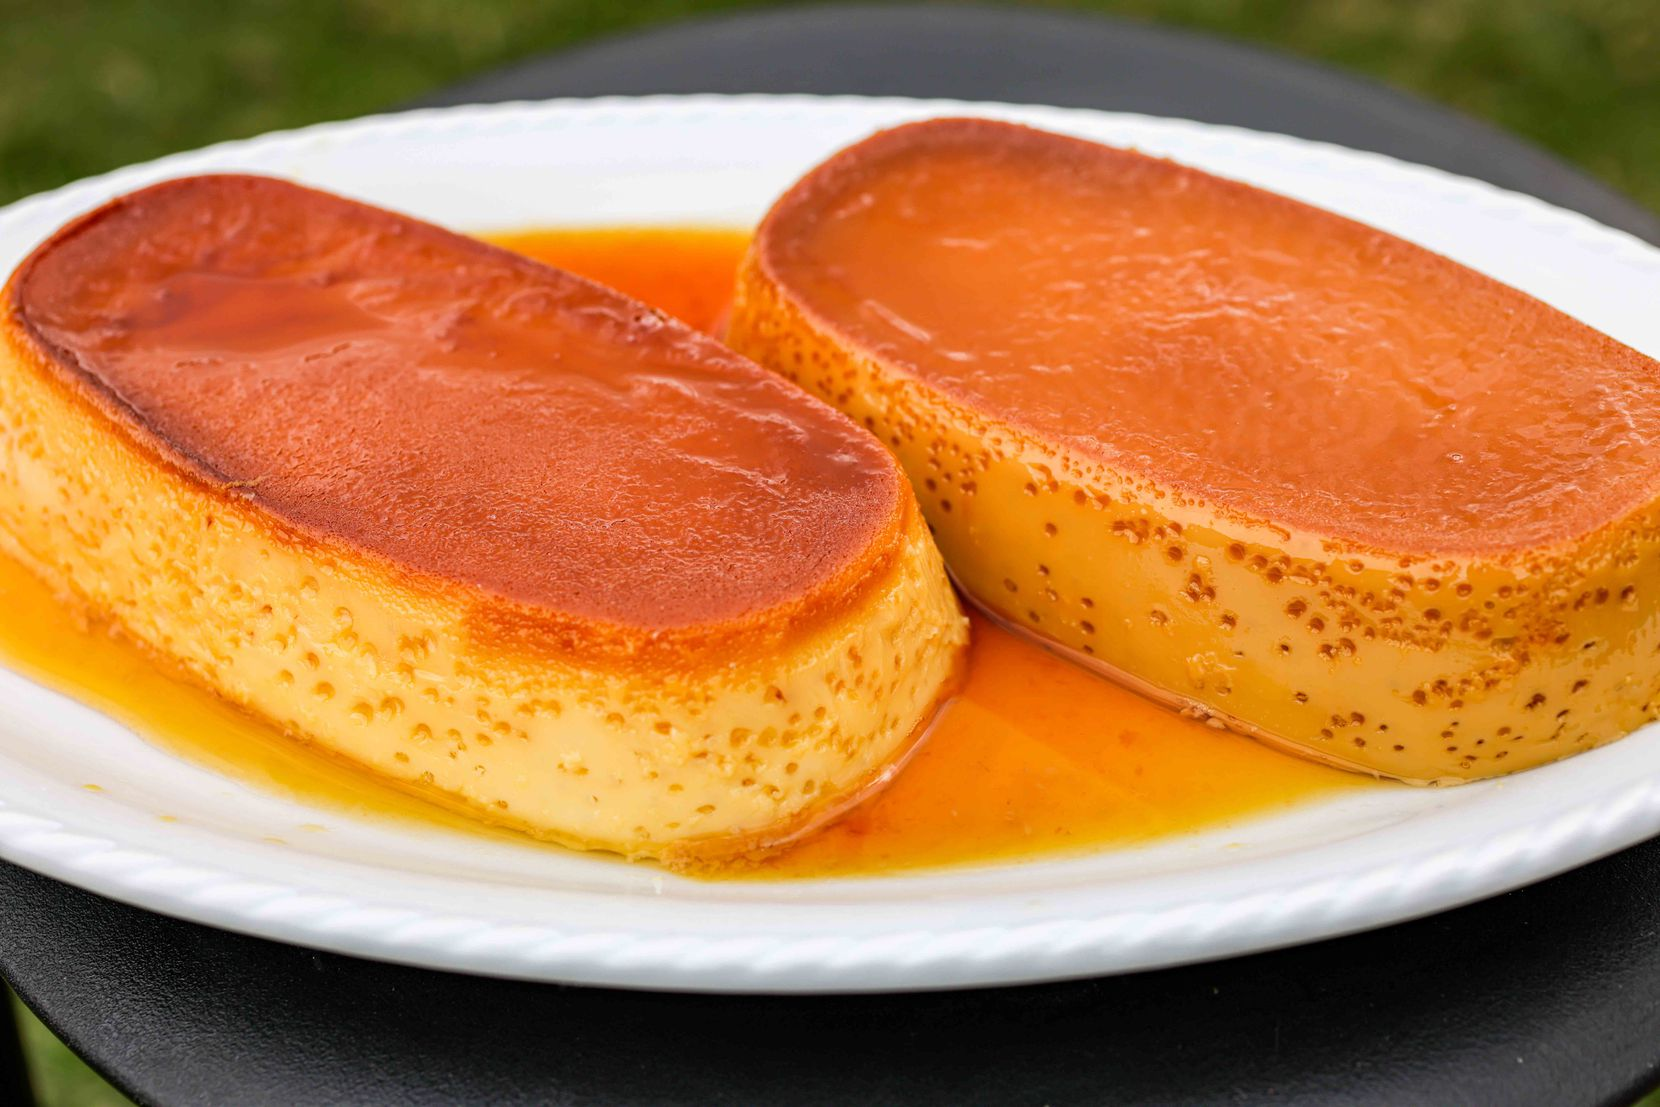 Caramel Flan by The Pandesal Place in Allen